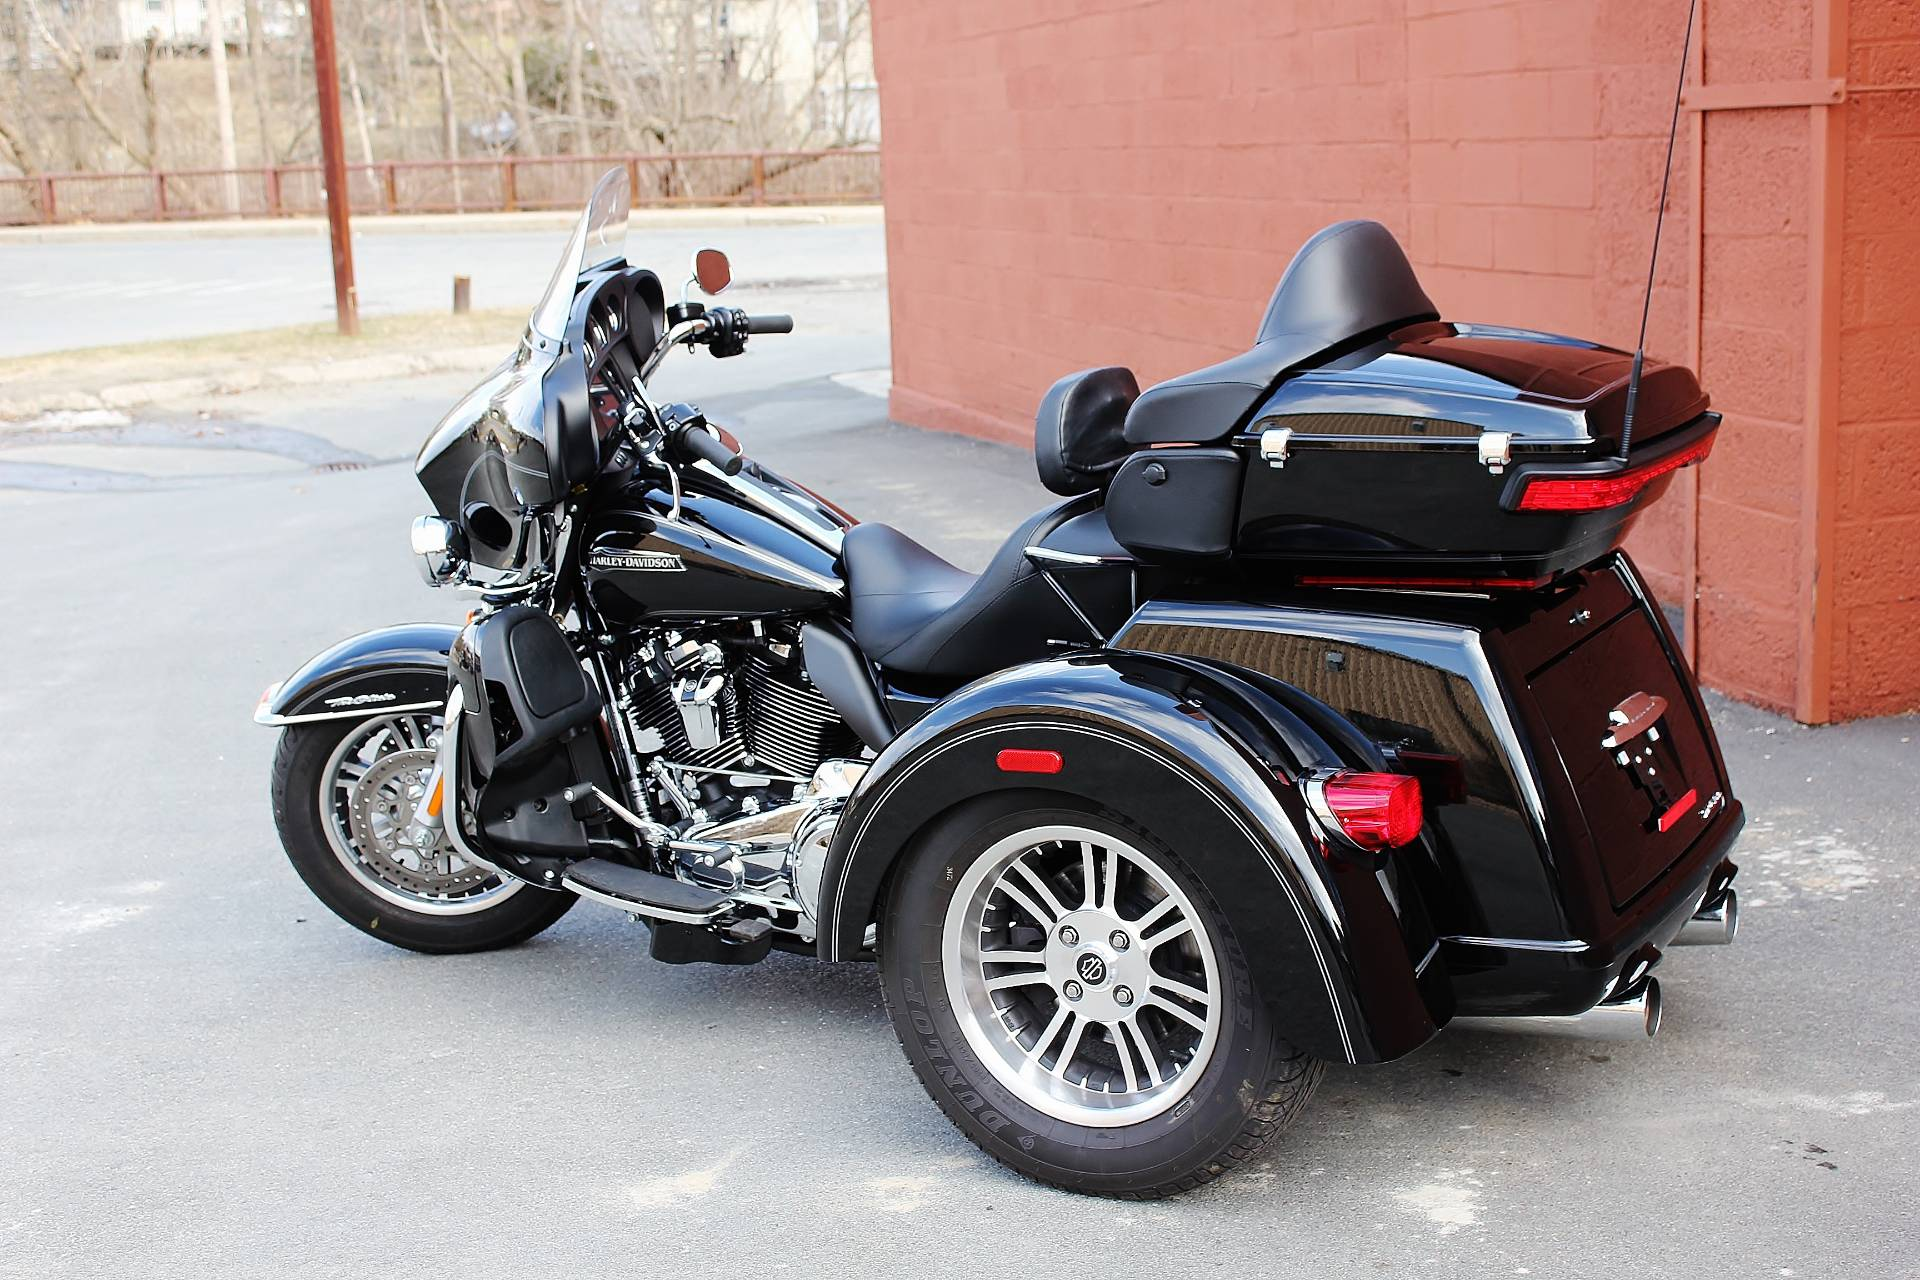 used 2017 harley davidson tri glide ultra trikes in adams ma stock number 855748. Black Bedroom Furniture Sets. Home Design Ideas